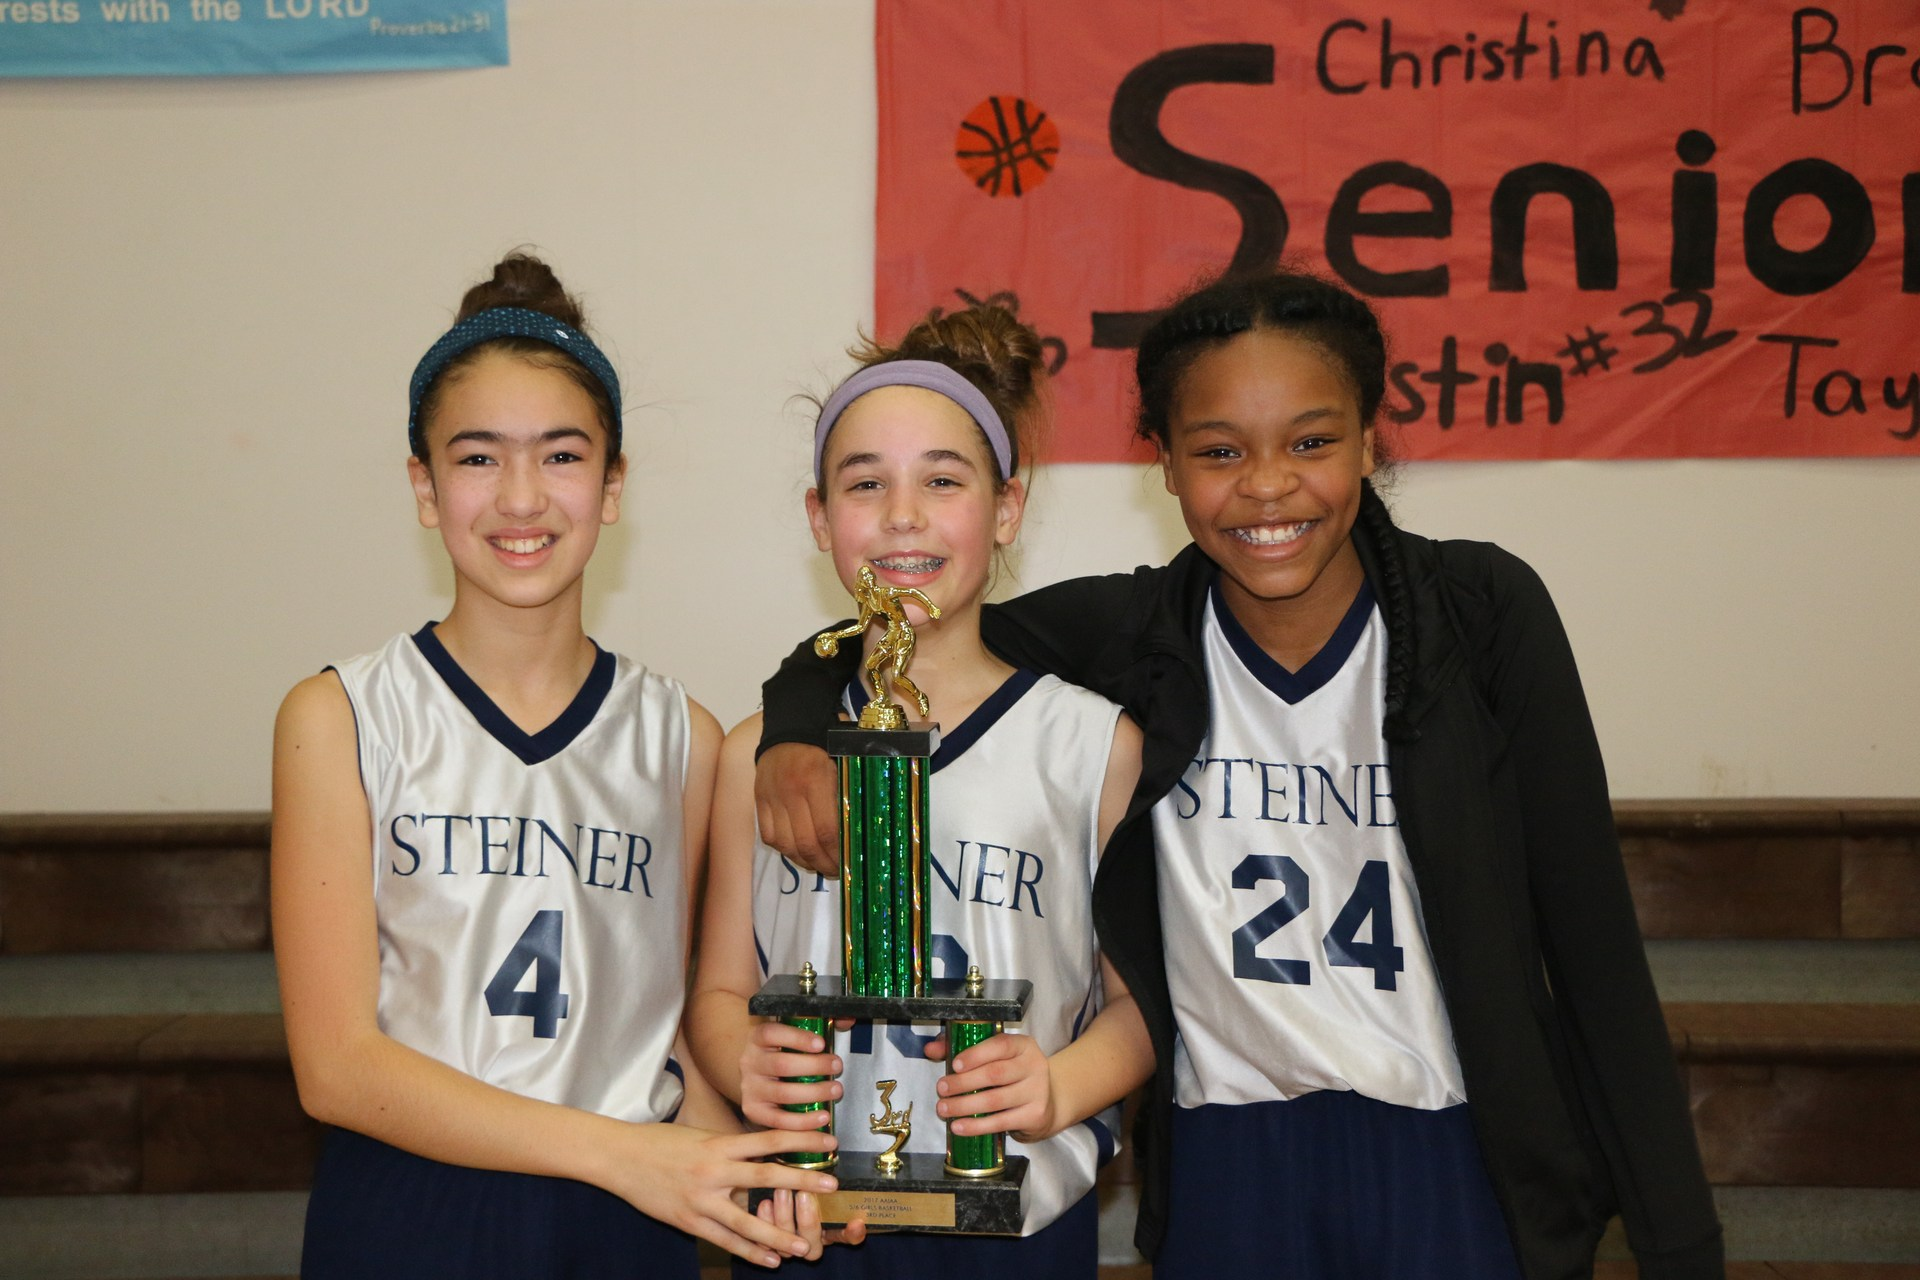 Lower School Girls Basketball Trophy